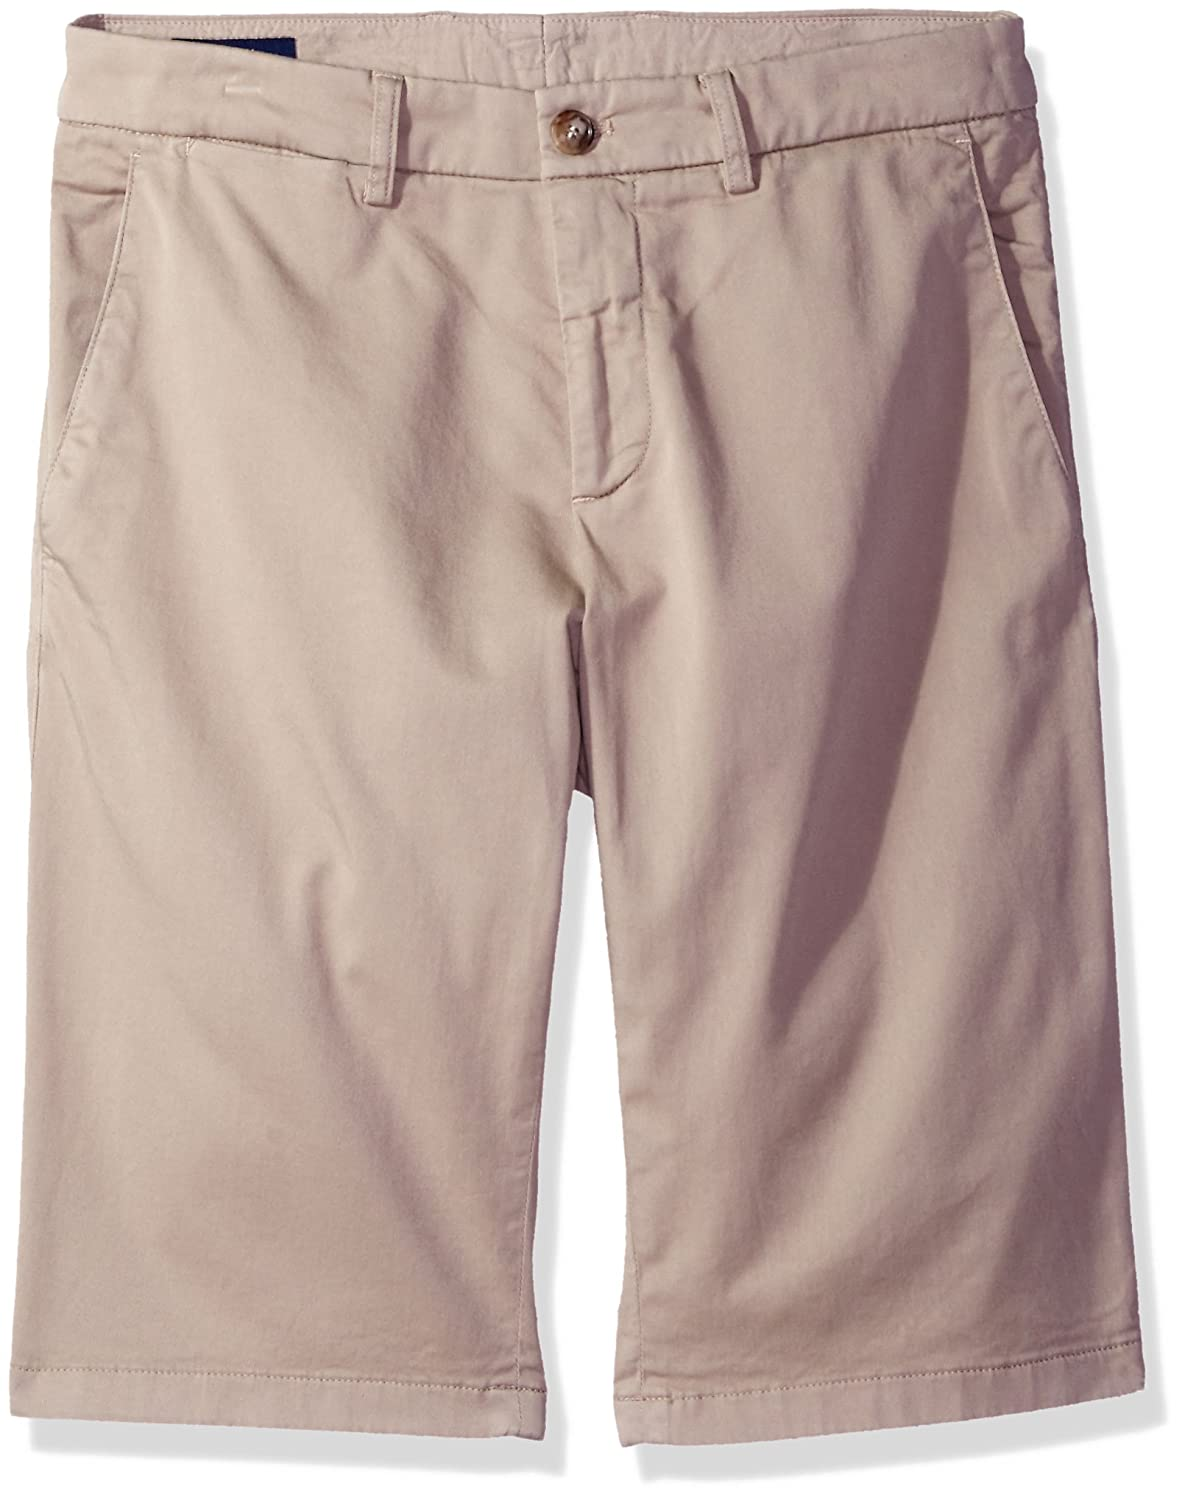 Façonnable Men's Iconic Fit Bermuda Short FFMPO102M59WRE